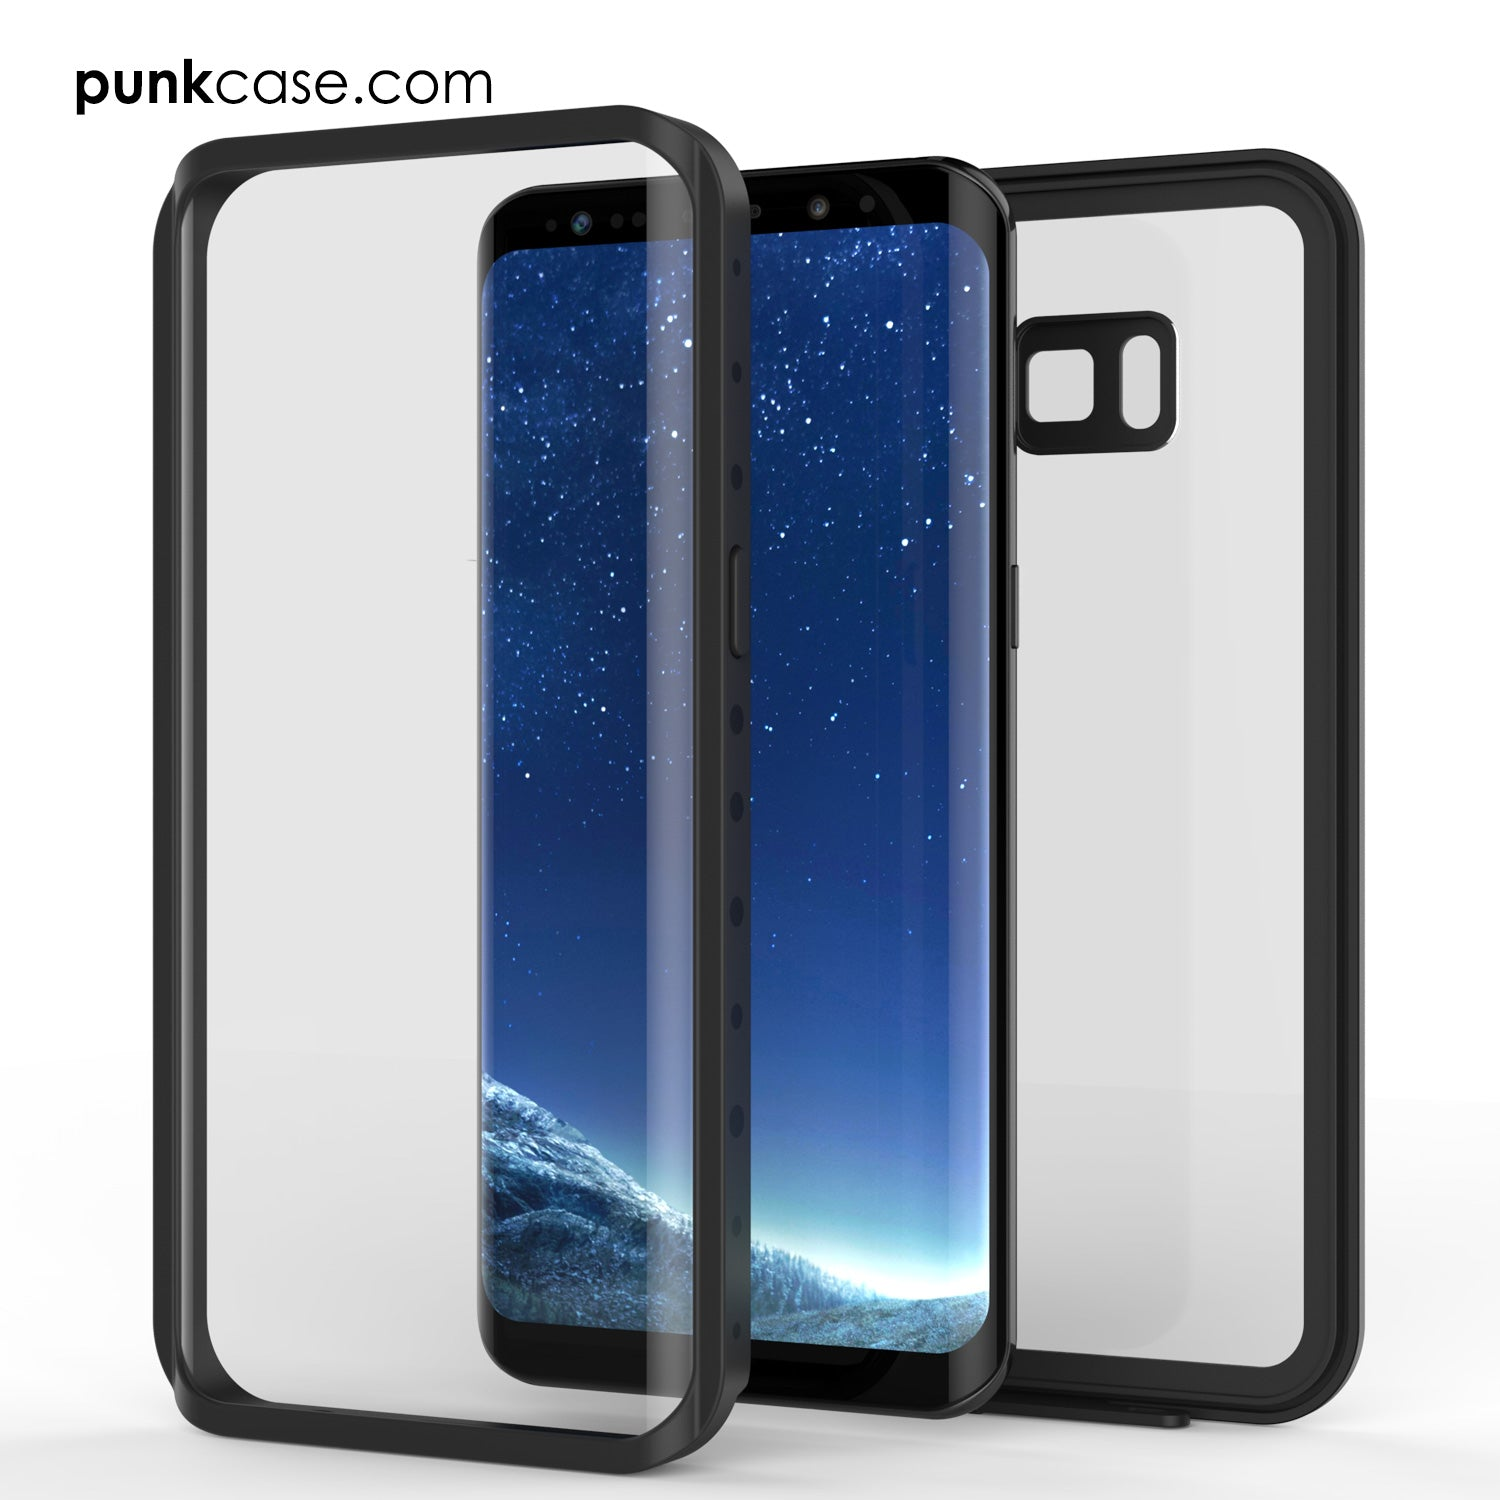 Galaxy S8 Waterproof Case, Punkcase [StudStar Series] [Slim Fit] [IP68 Certified] [Shockproof] [Dirtproof] [Snowproof] Armor Cover [Clear]